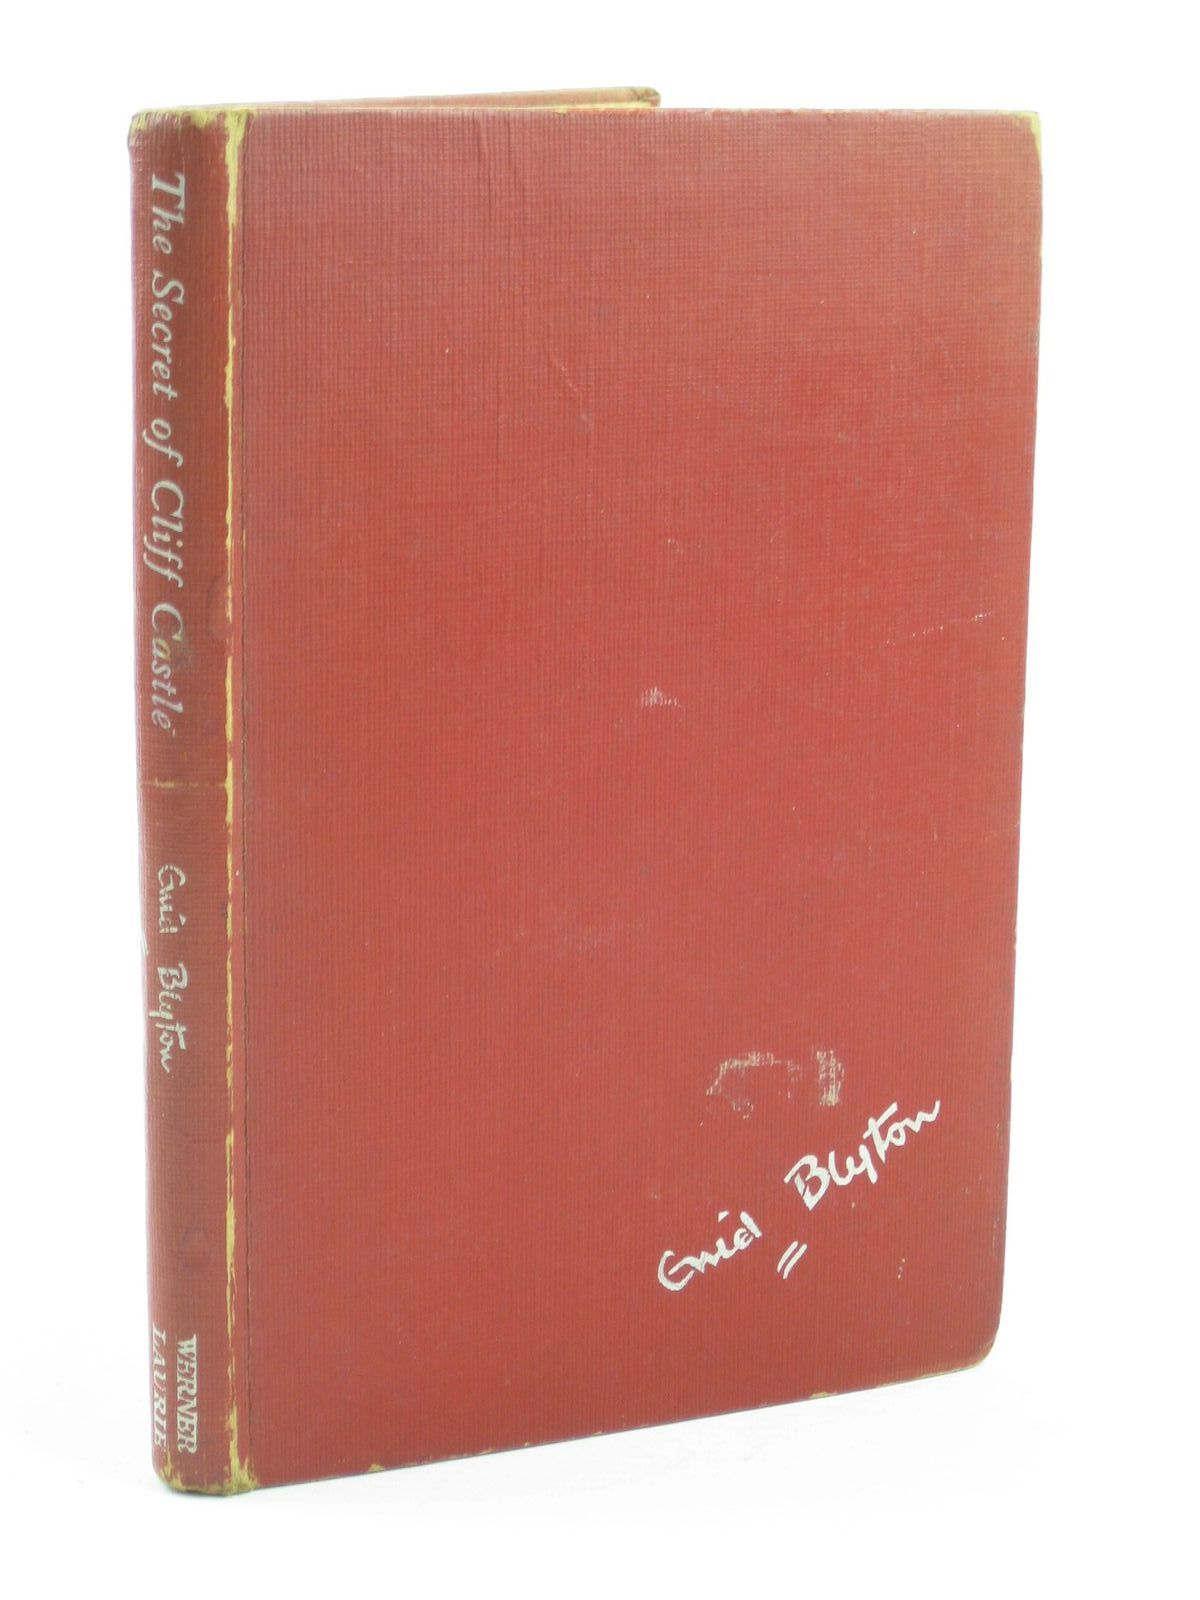 Photo of THE SECRET OF CLIFF CASTLE written by Blyton, Enid illustrated by Brook, G. published by Werner Laurie (STOCK CODE: 1401858)  for sale by Stella & Rose's Books